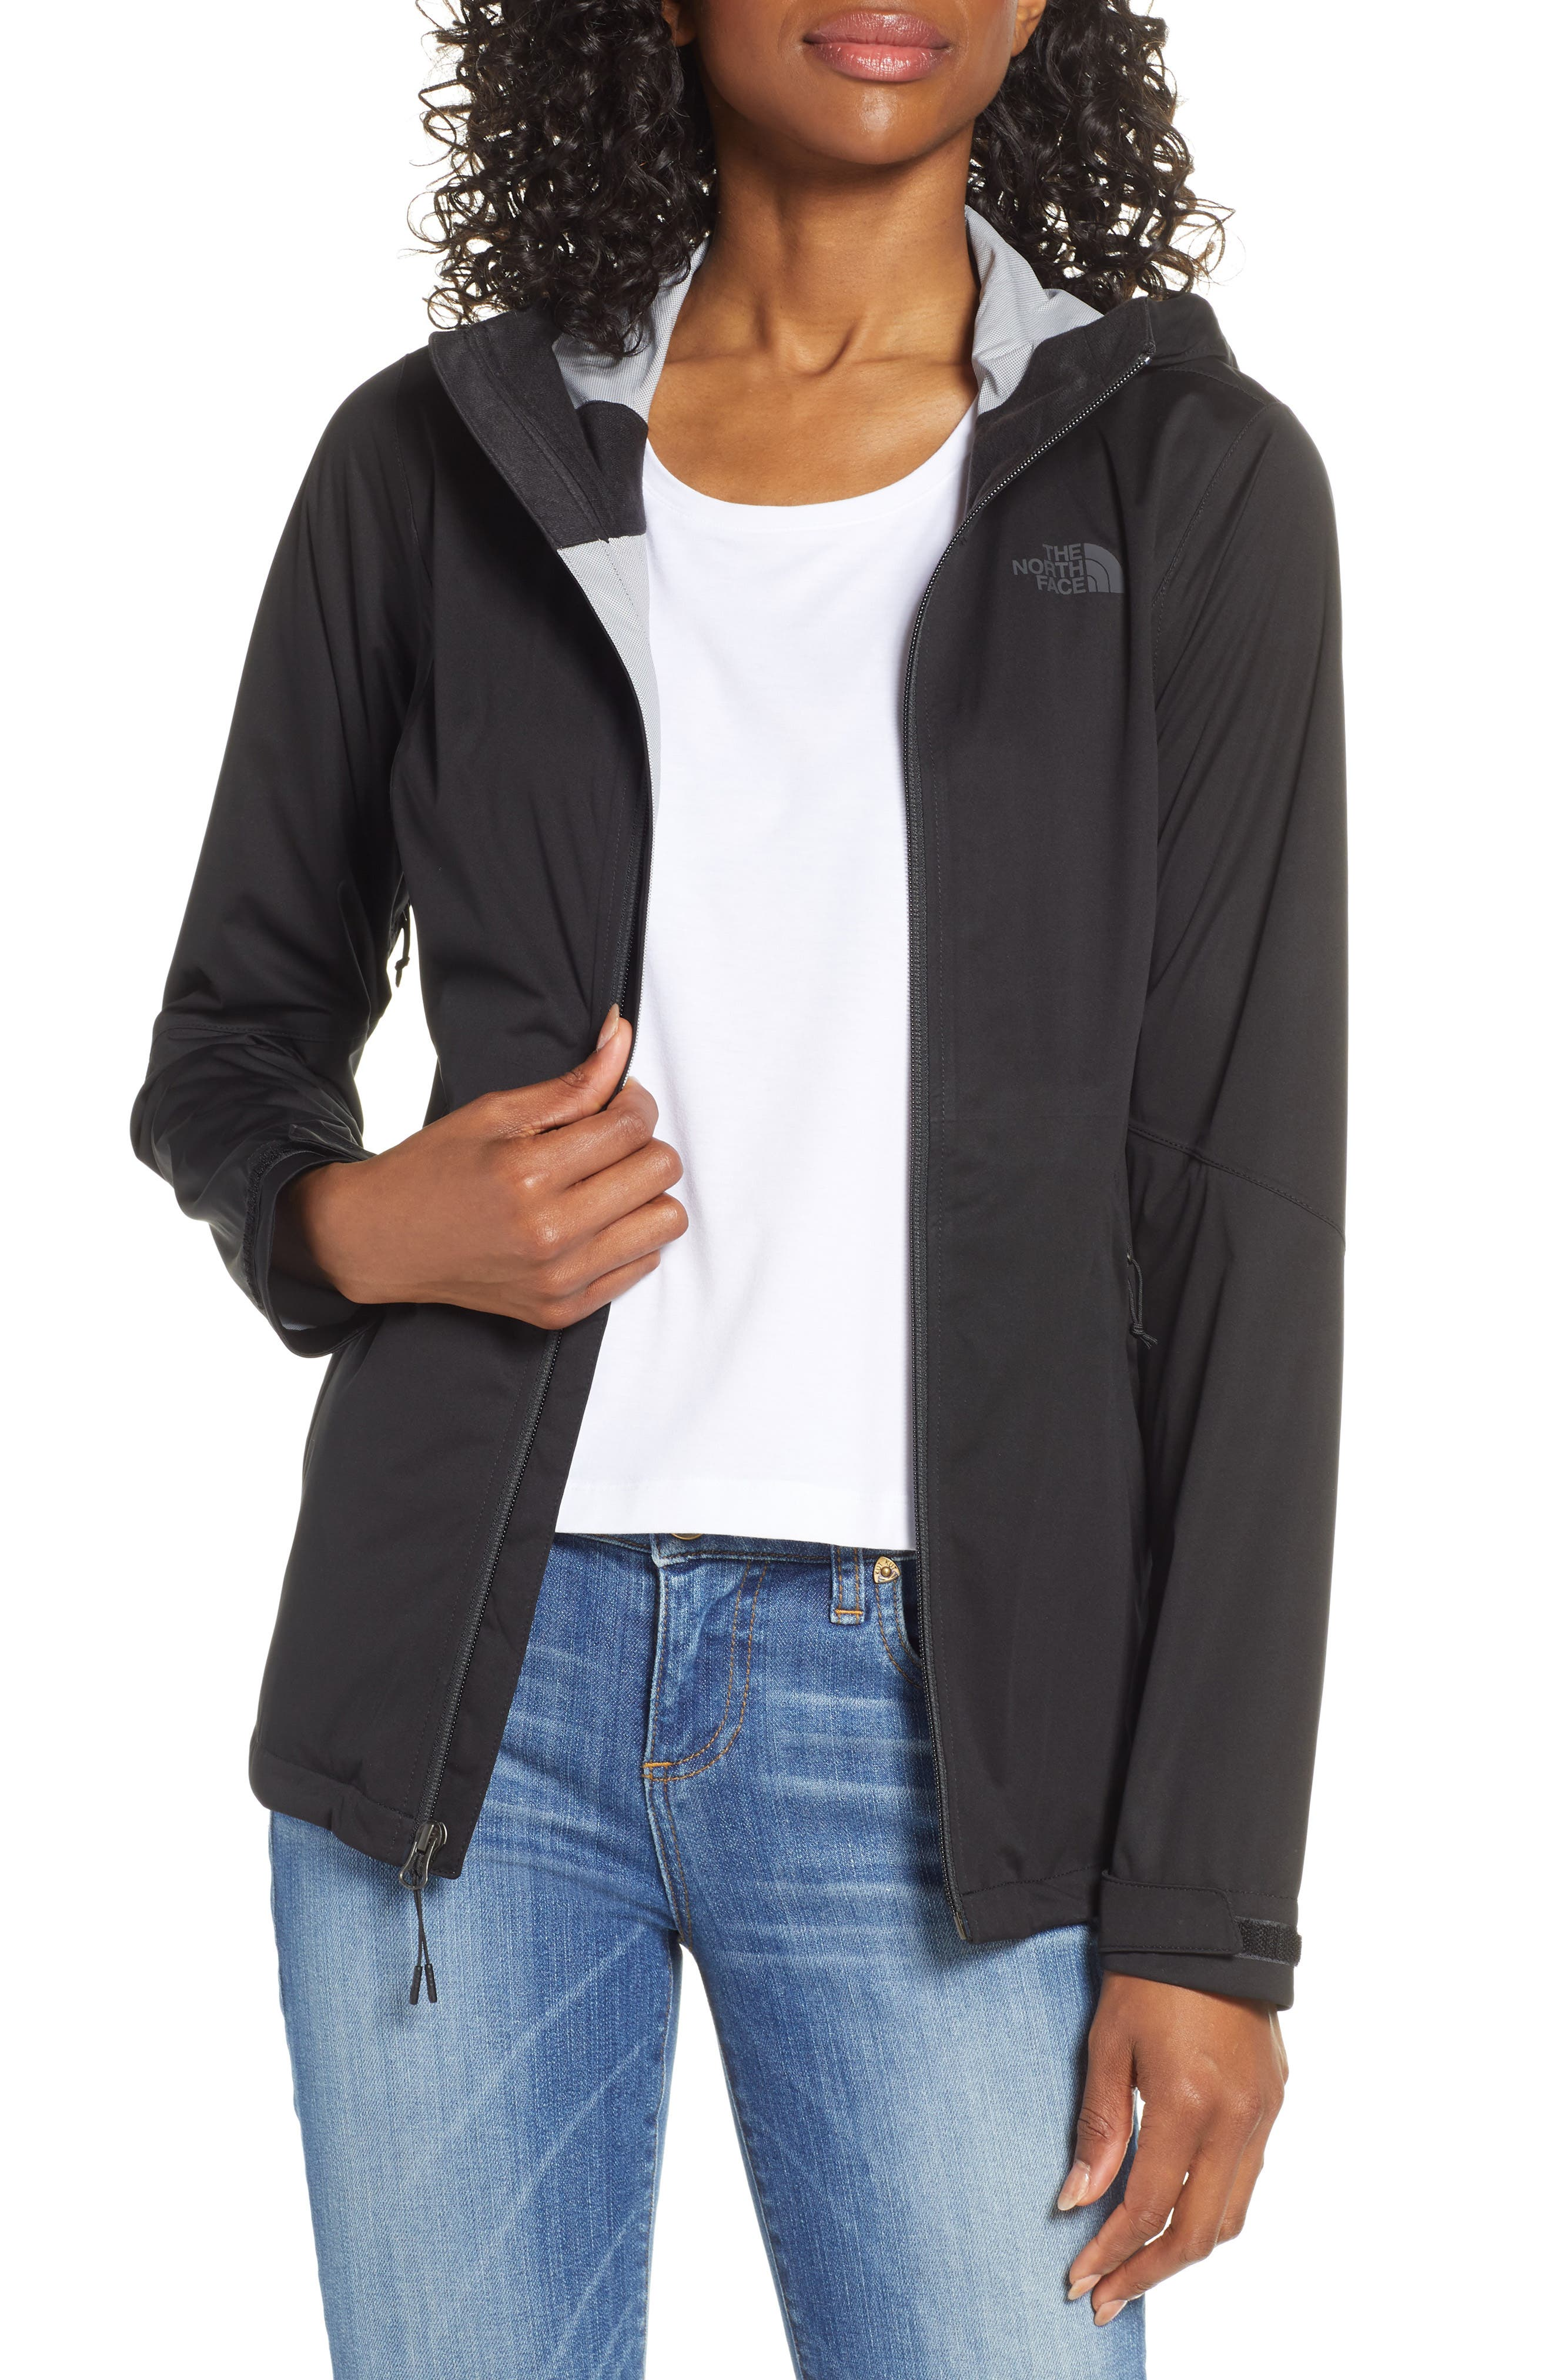 THE NORTH FACE, Allproof Stretch Jacket, Main thumbnail 1, color, TNF BLACK